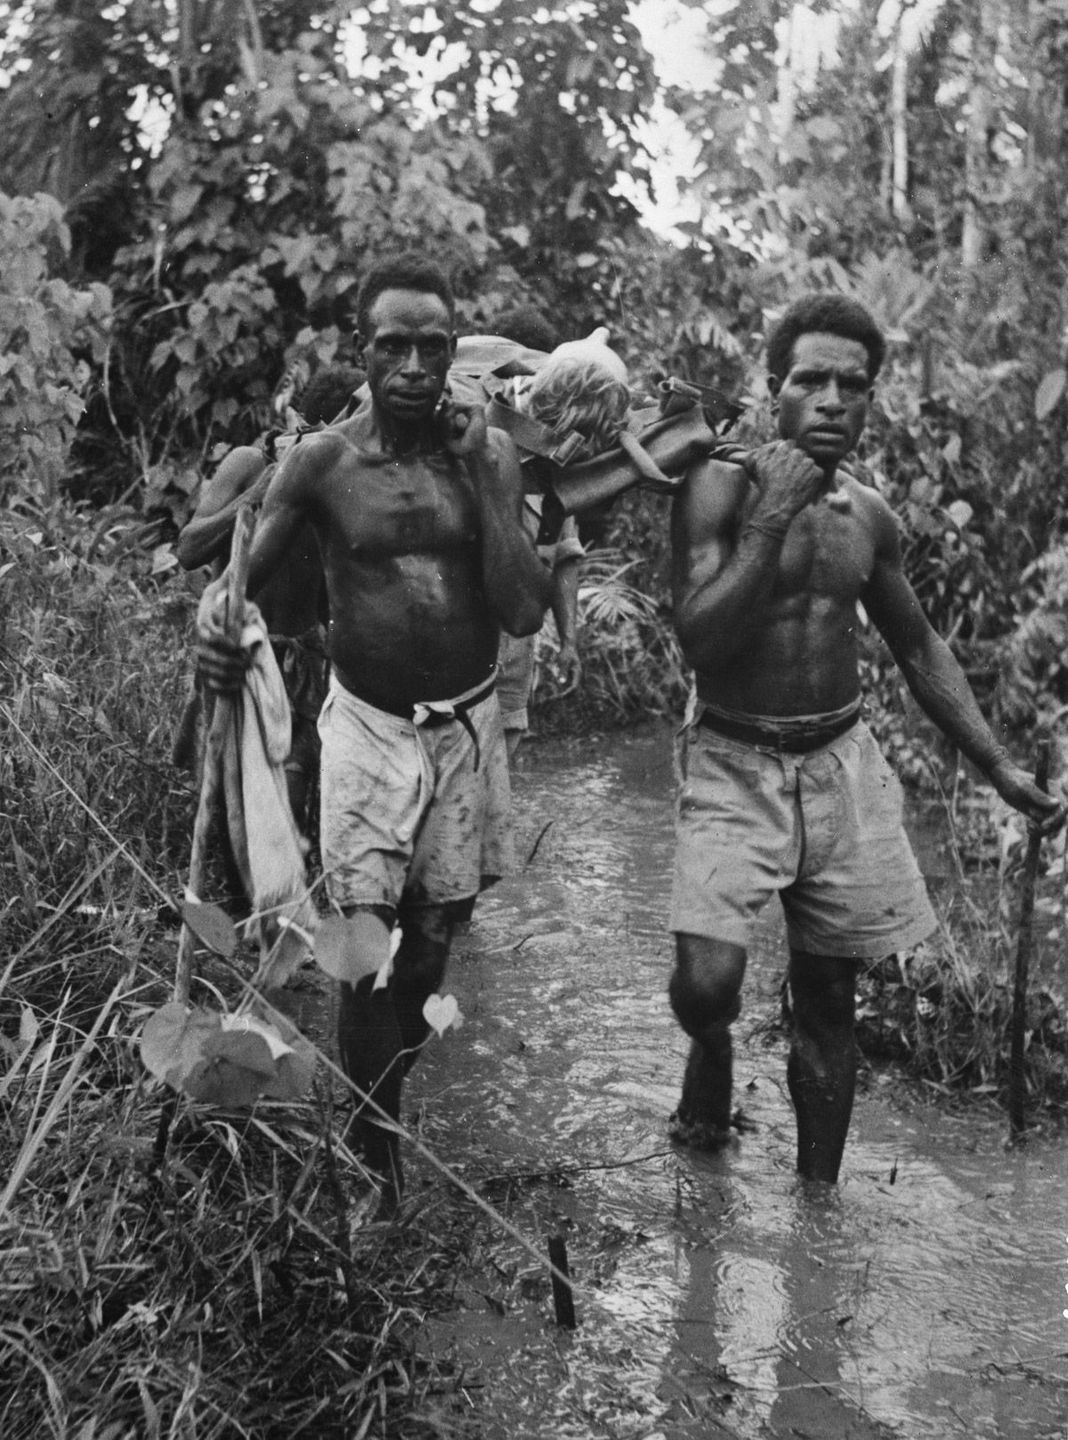 In Papa New Guinea There S A Tribe When A Hunter Flaunts His Success To The Rest Of The Village They Kill Him And Drive Away Evil Spirits With A Drum Made Of